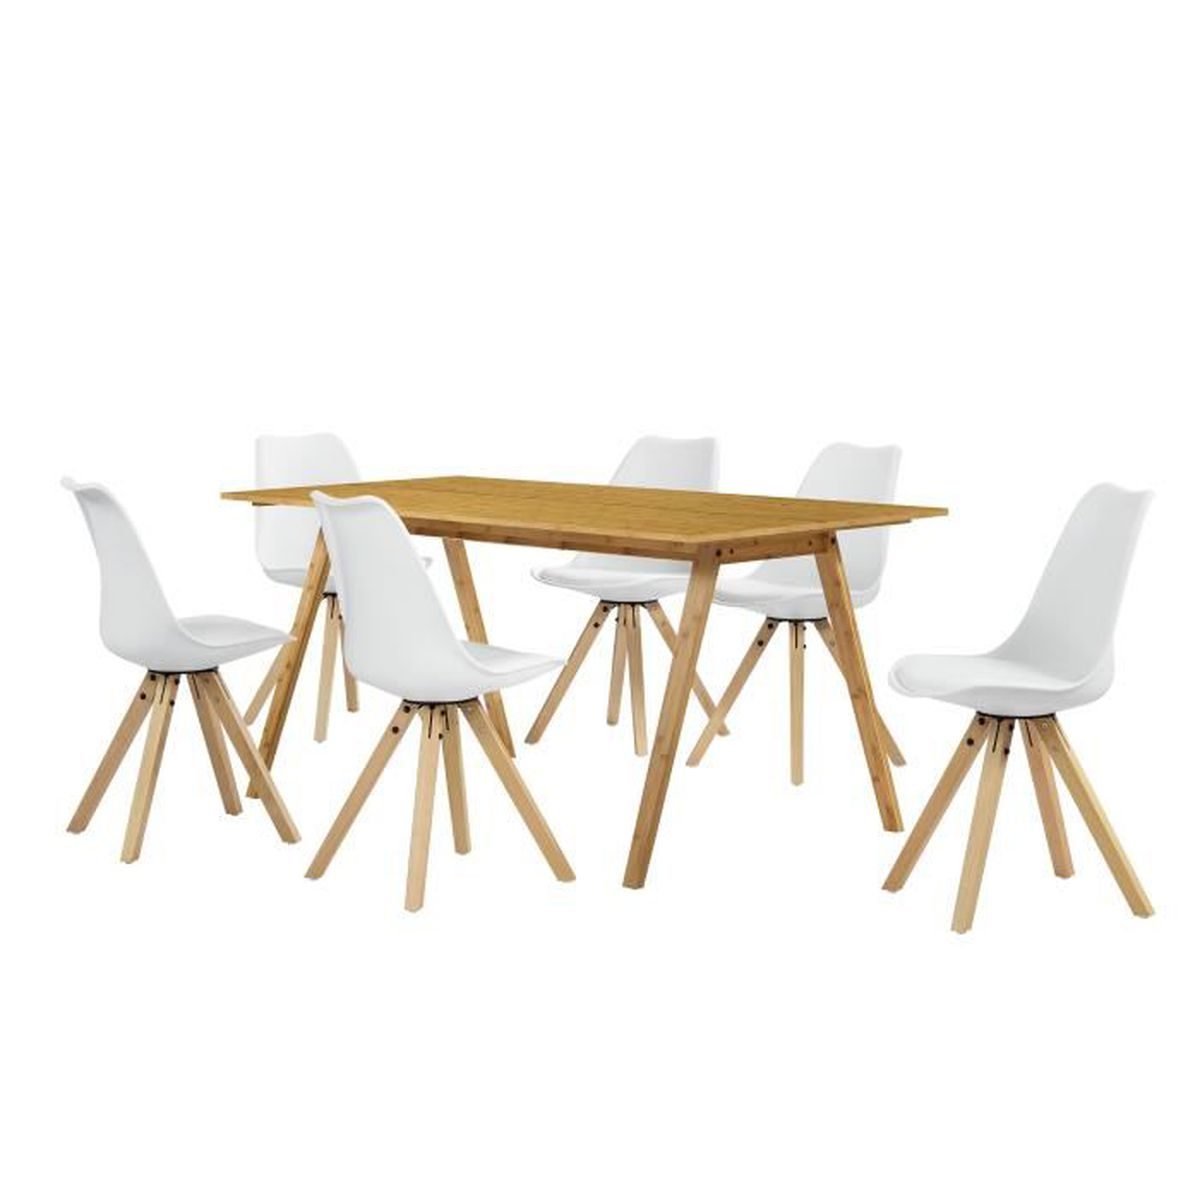 Table manger bambou avec 6 chaises blanc for Table a manger chaises